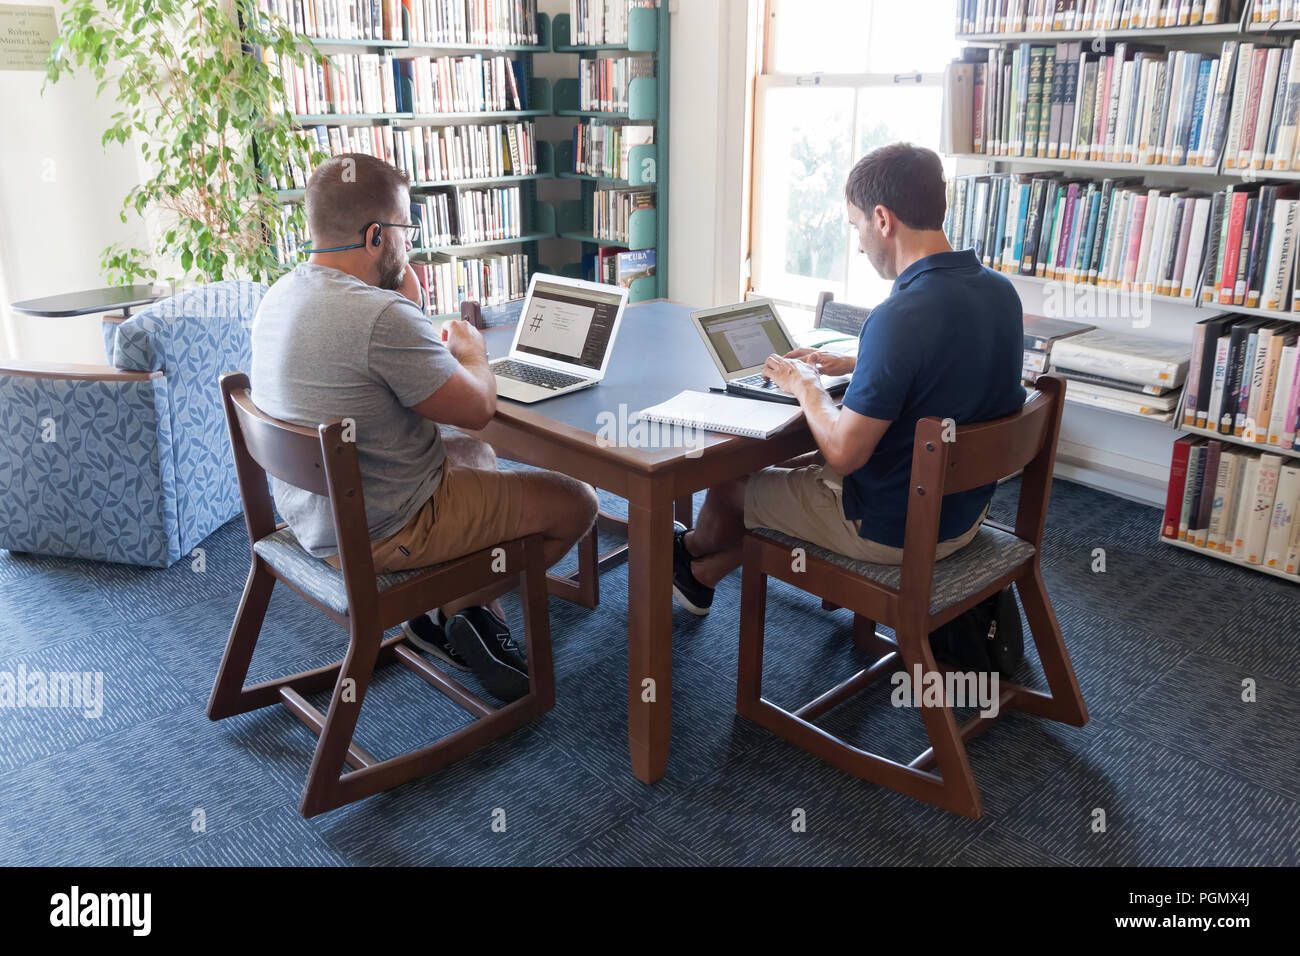 Adults using laptop computers in the Provincetown, Massachusetts public library. - Stock Image